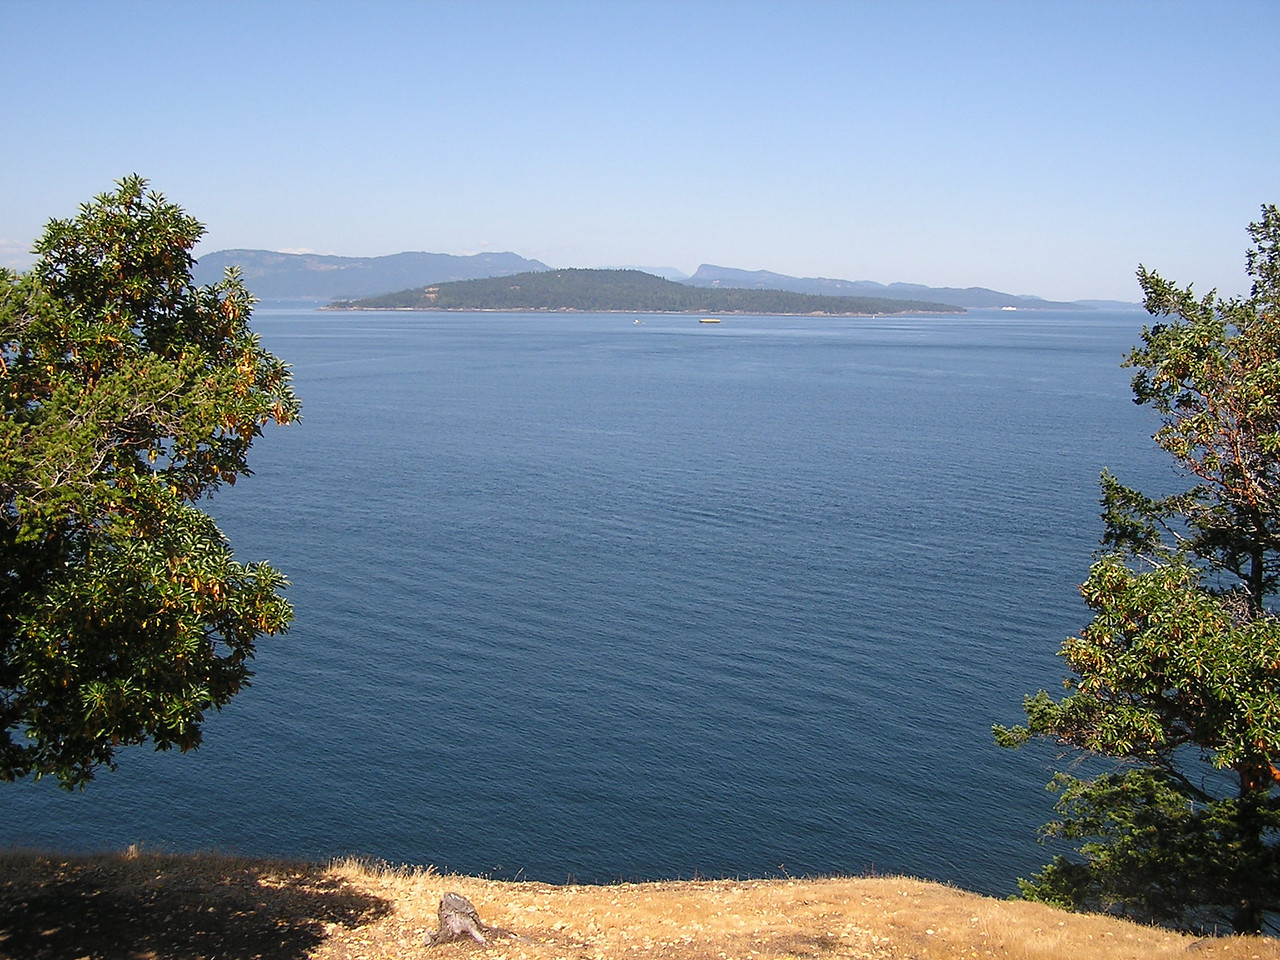 the view from above the lighthouse on Stuart Island